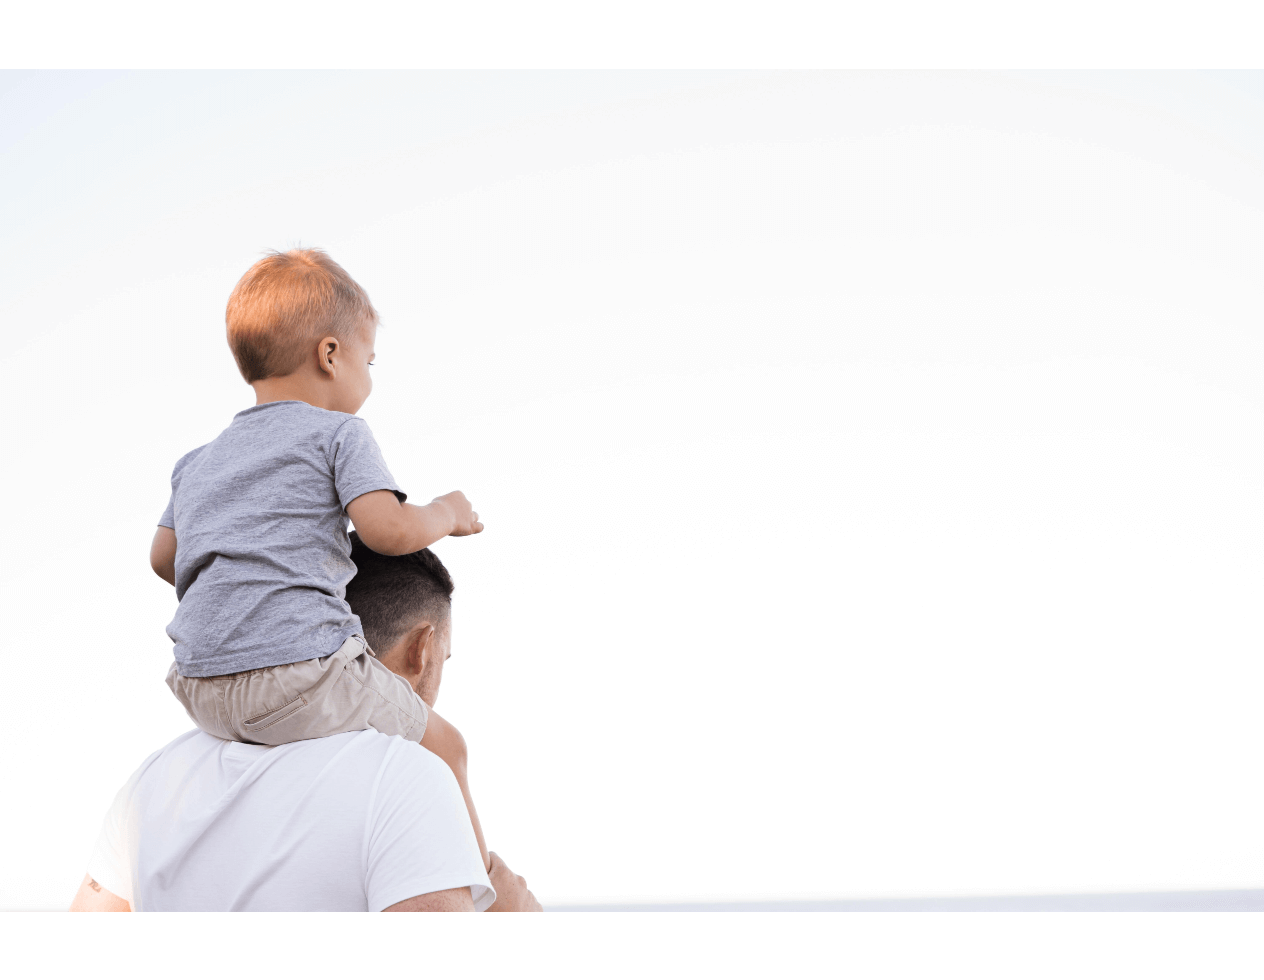 Man with son on his shoulders on a white background.